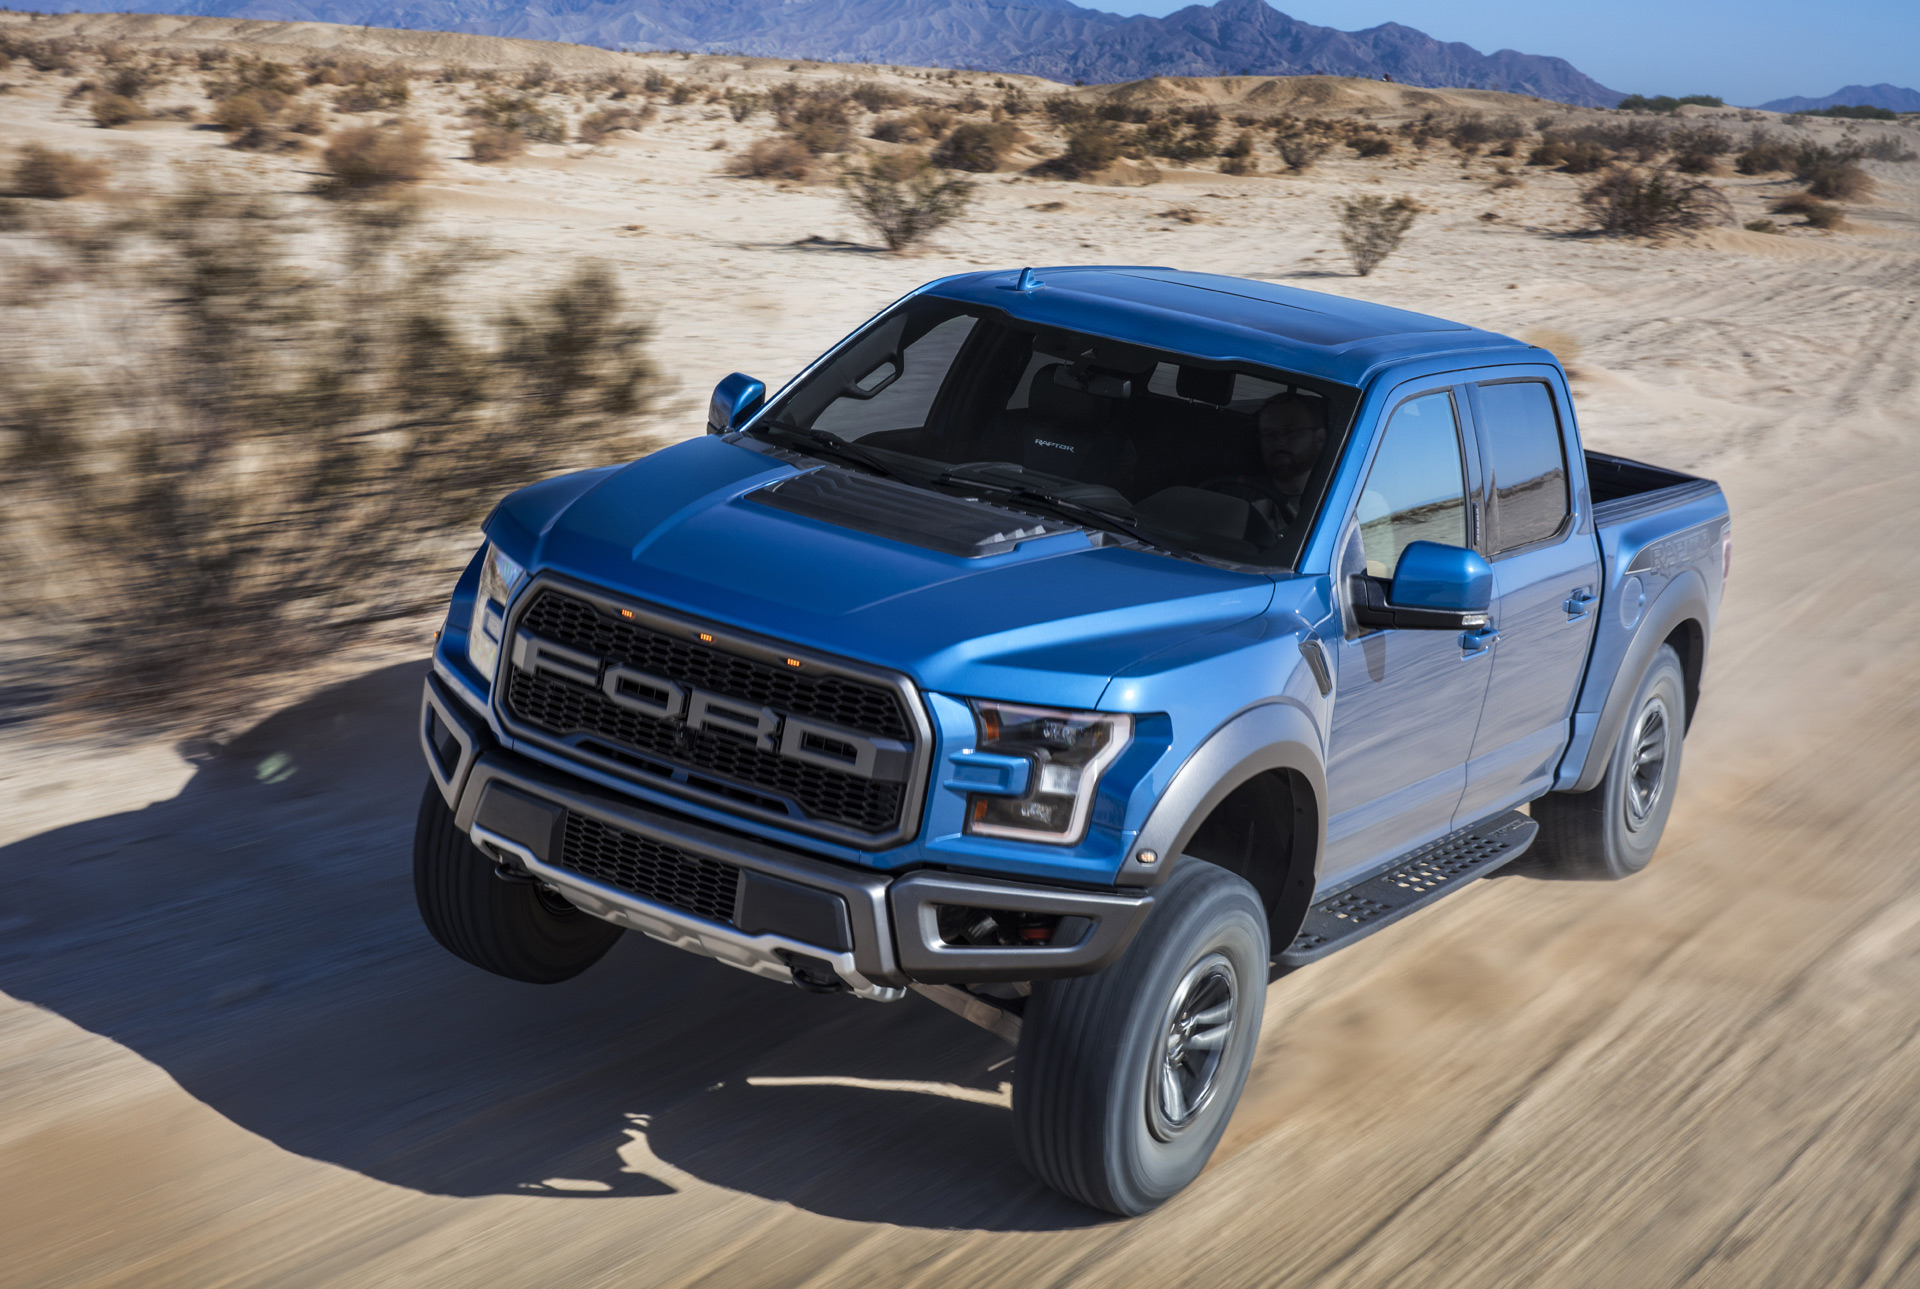 29 New The F150 Ford 2019 Price And Release Date Engine